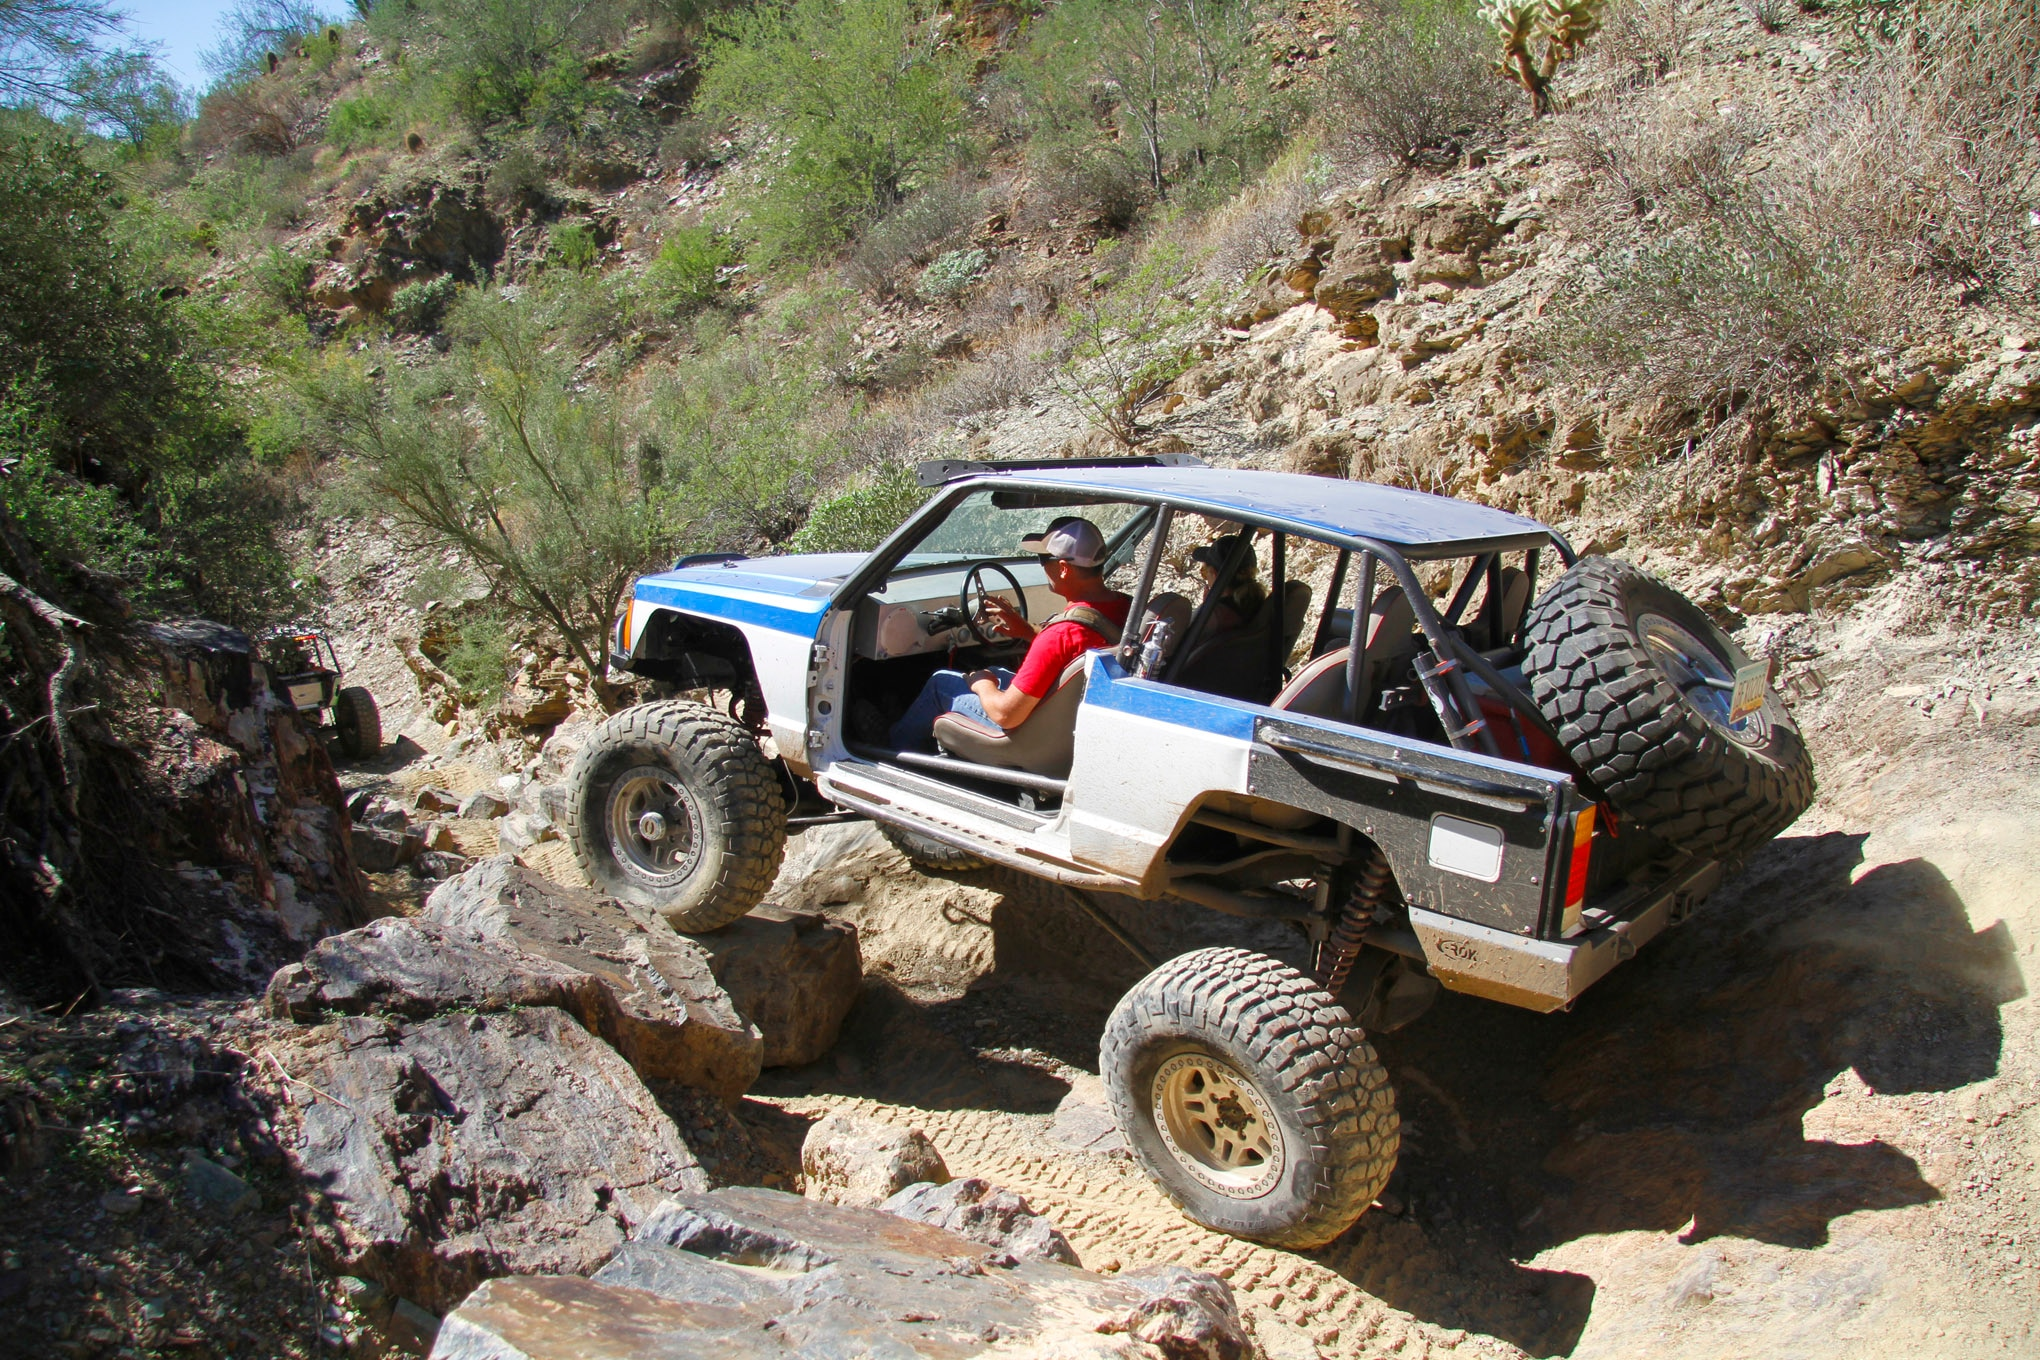 Neal Hancock had the lone Cherokee on the trail. His chop-top XJ is heavily modified though. The 6.0L GM V-8 and four-speed auto feed an Atlas transfer case. Built 1-ton axles and custom linked suspension are also part of the hardware list.